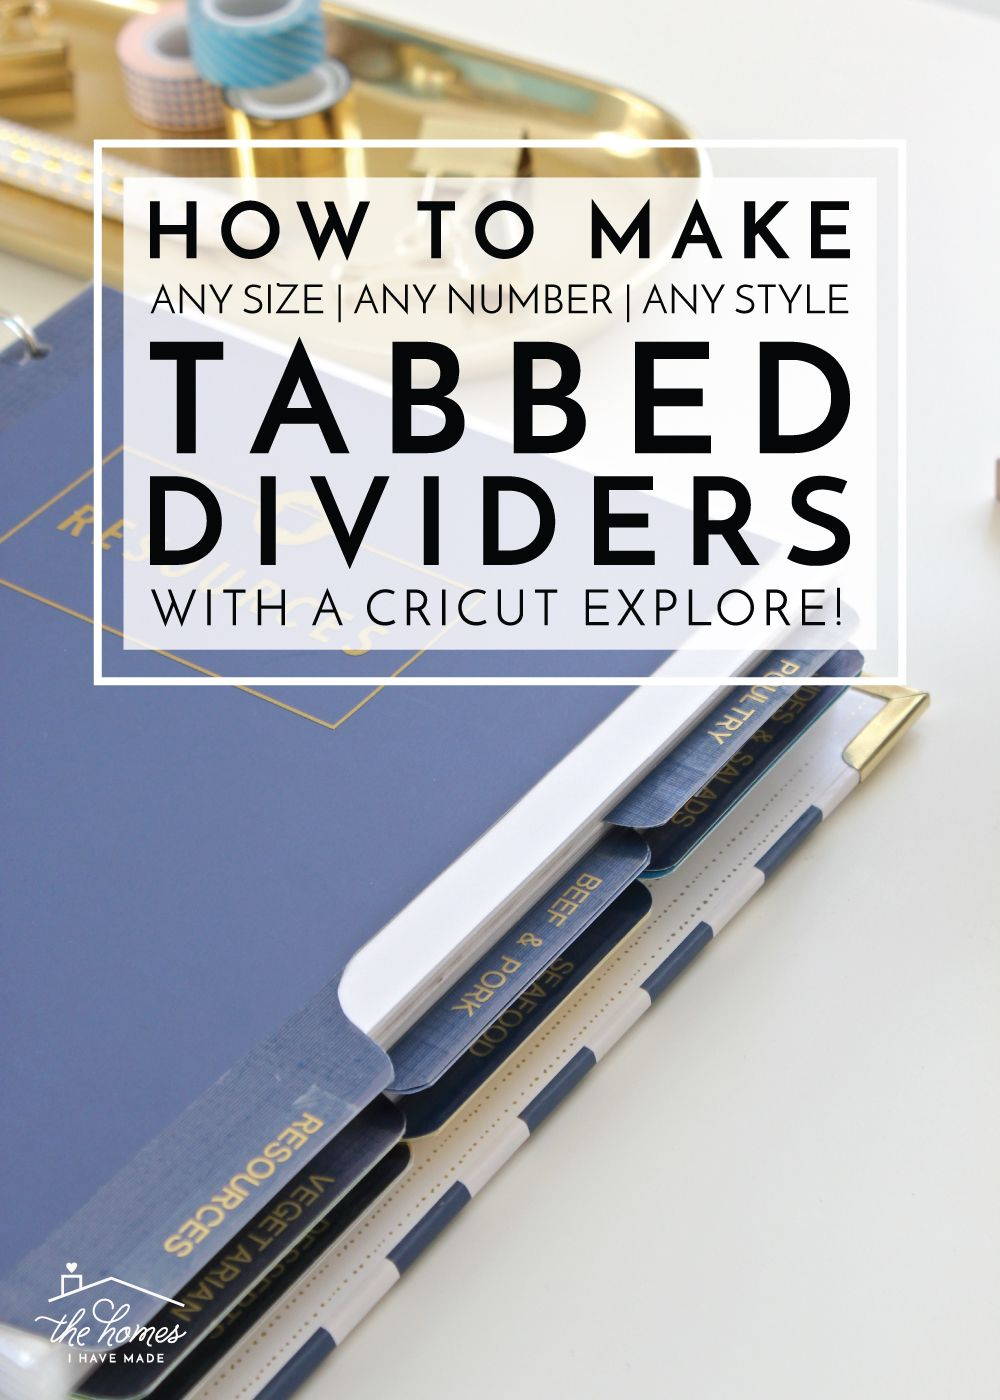 How To Make Tabbed Dividers On A Cricut Explore Storage Ideas Ironon Obsess Technolog Devic Project Circuit Idea Learn Your No Matter The Shape Size Or Style You Prefer For Binders This Tutorial Will Show